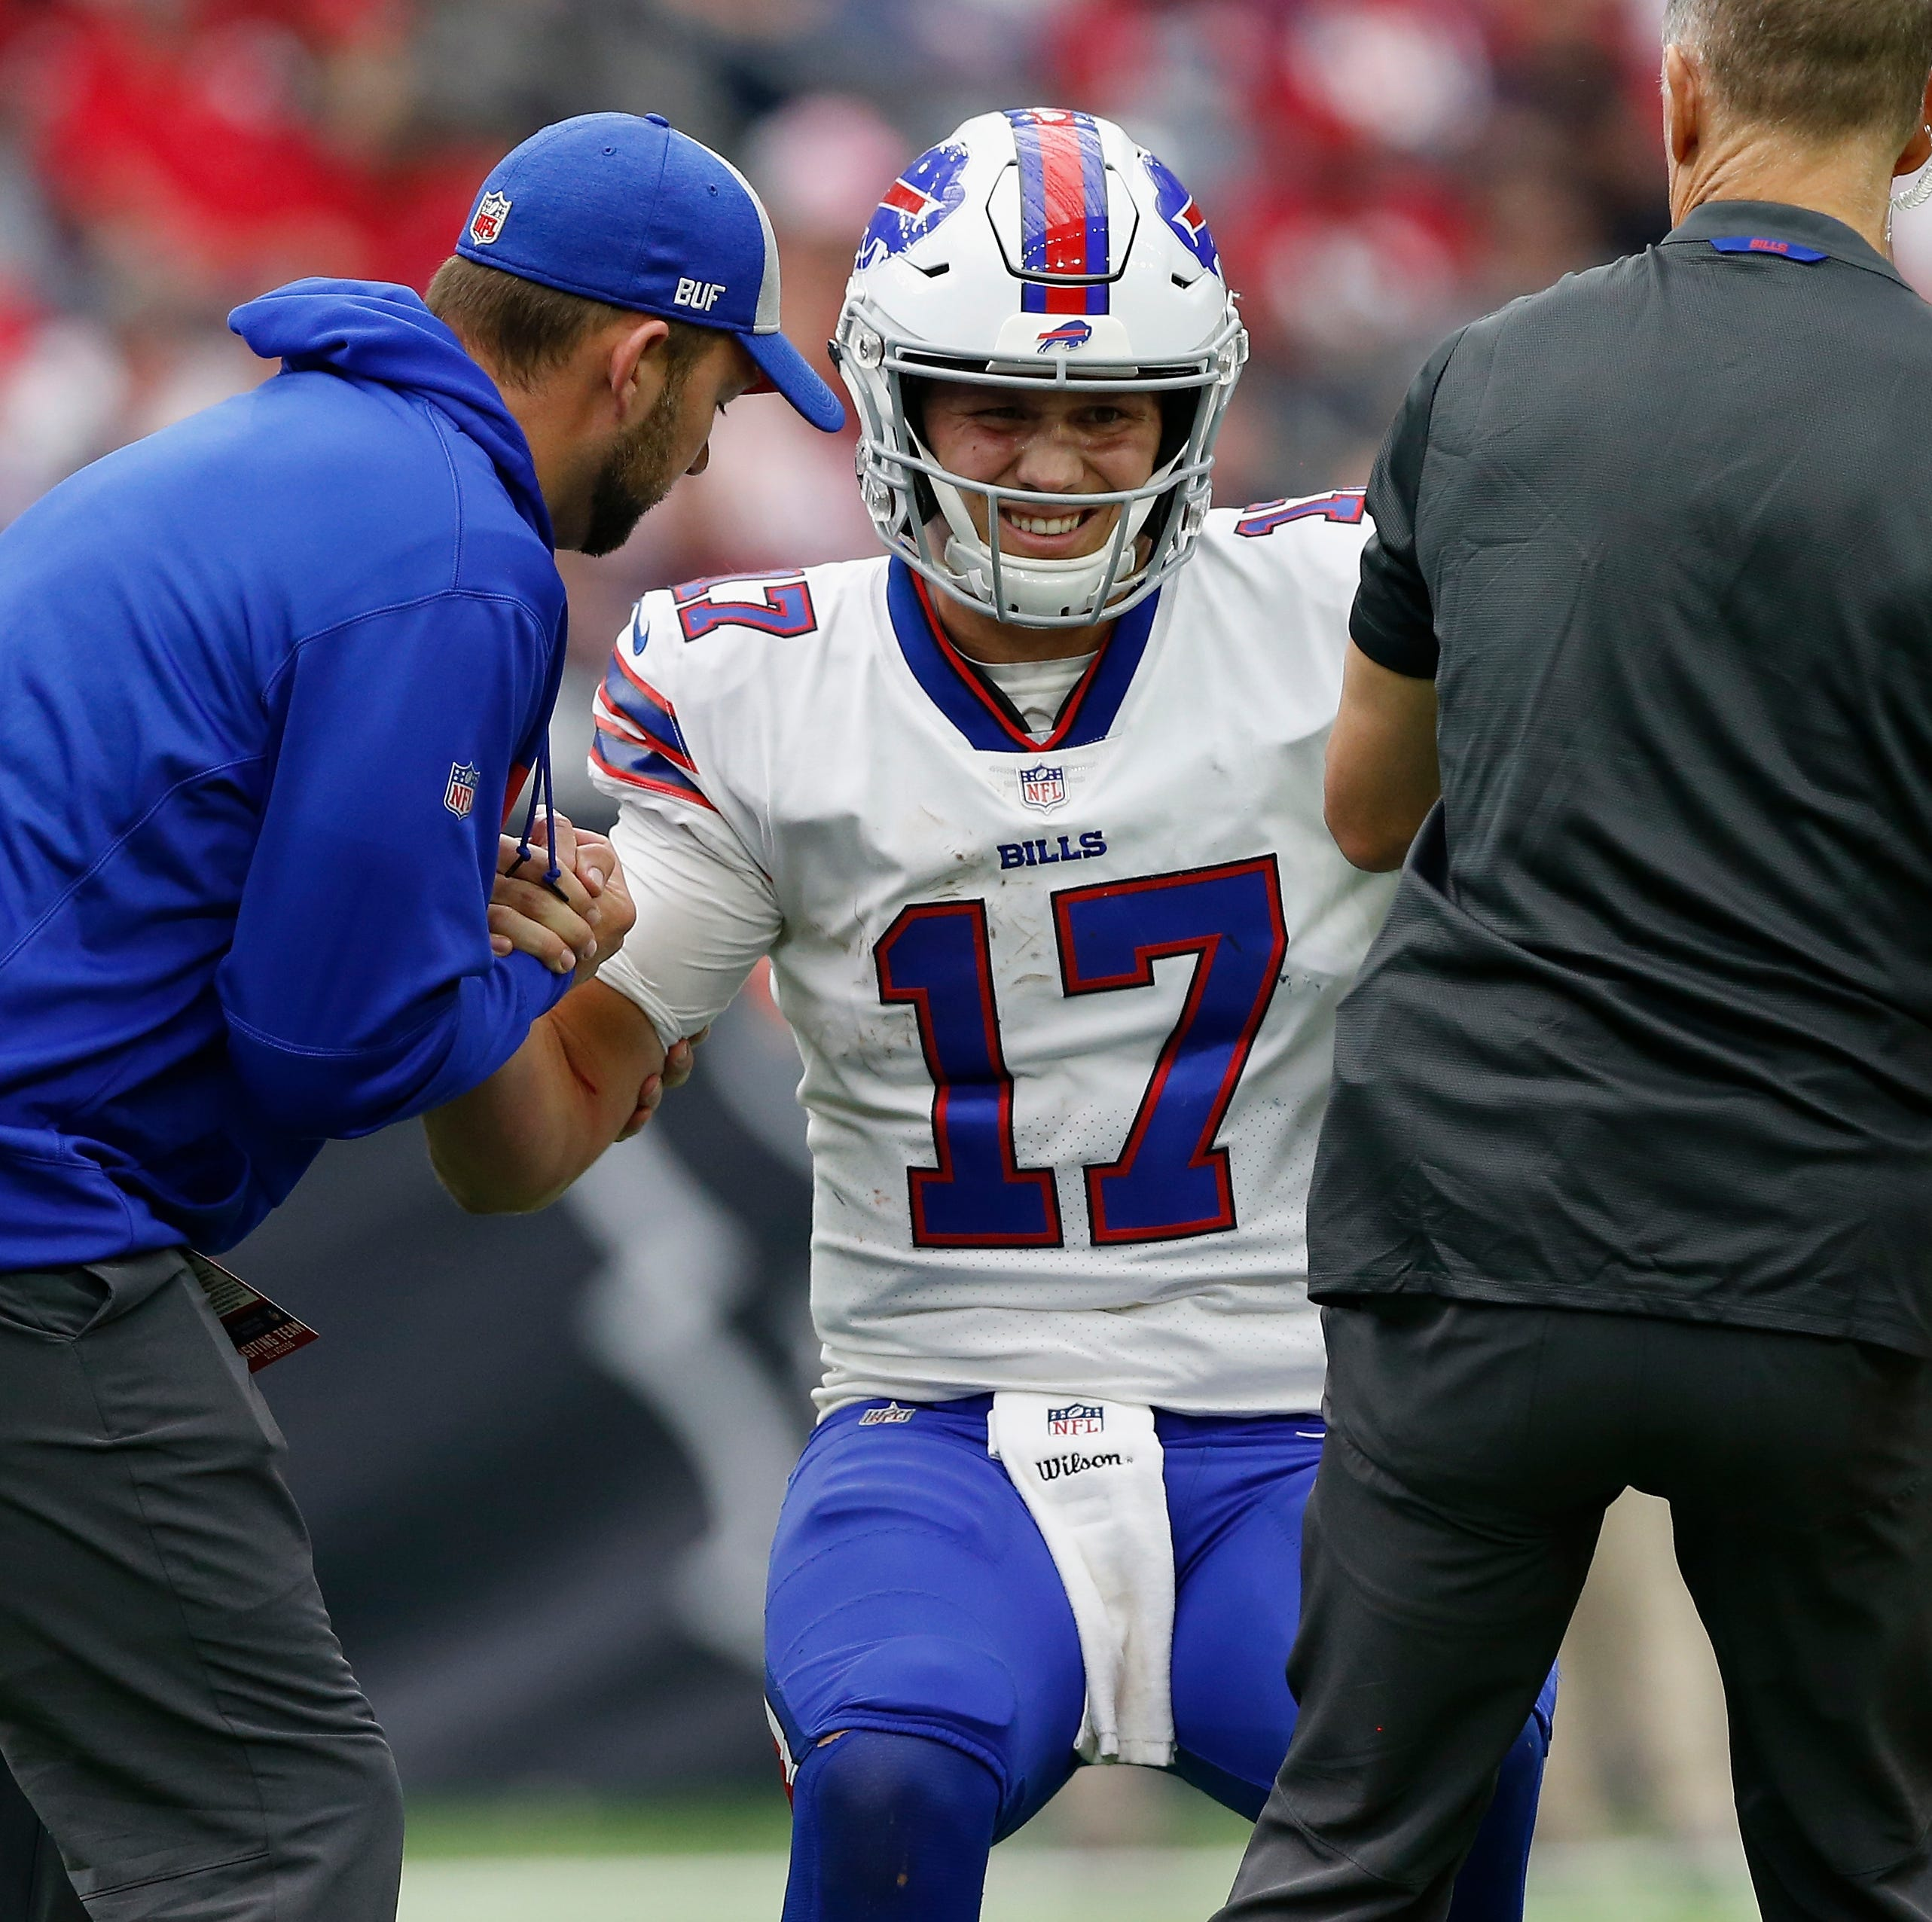 Bills' quarterback situation has hit rock bottom and Peterman, Benjamin need to go